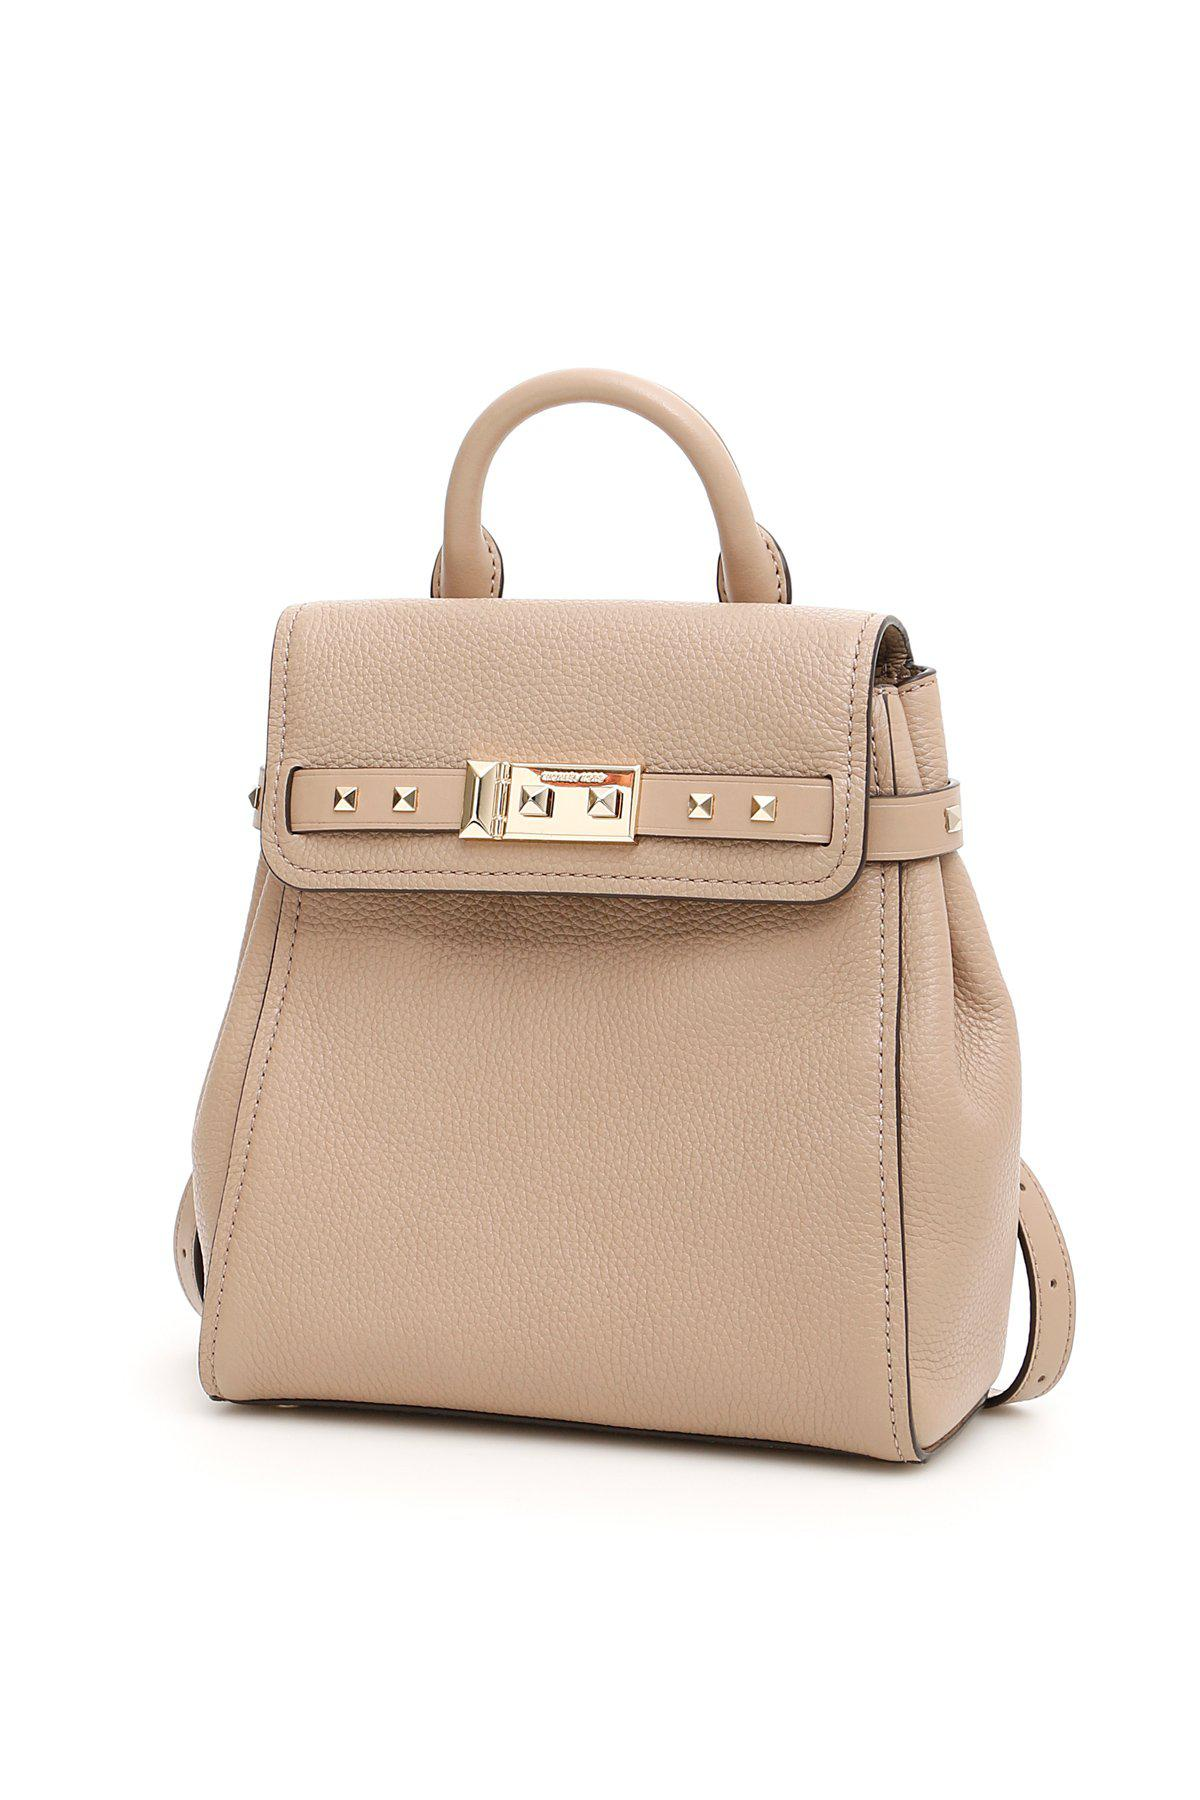 6f525c605a18 Lyst - MICHAEL Michael Kors Addison Small Backpack in Natural